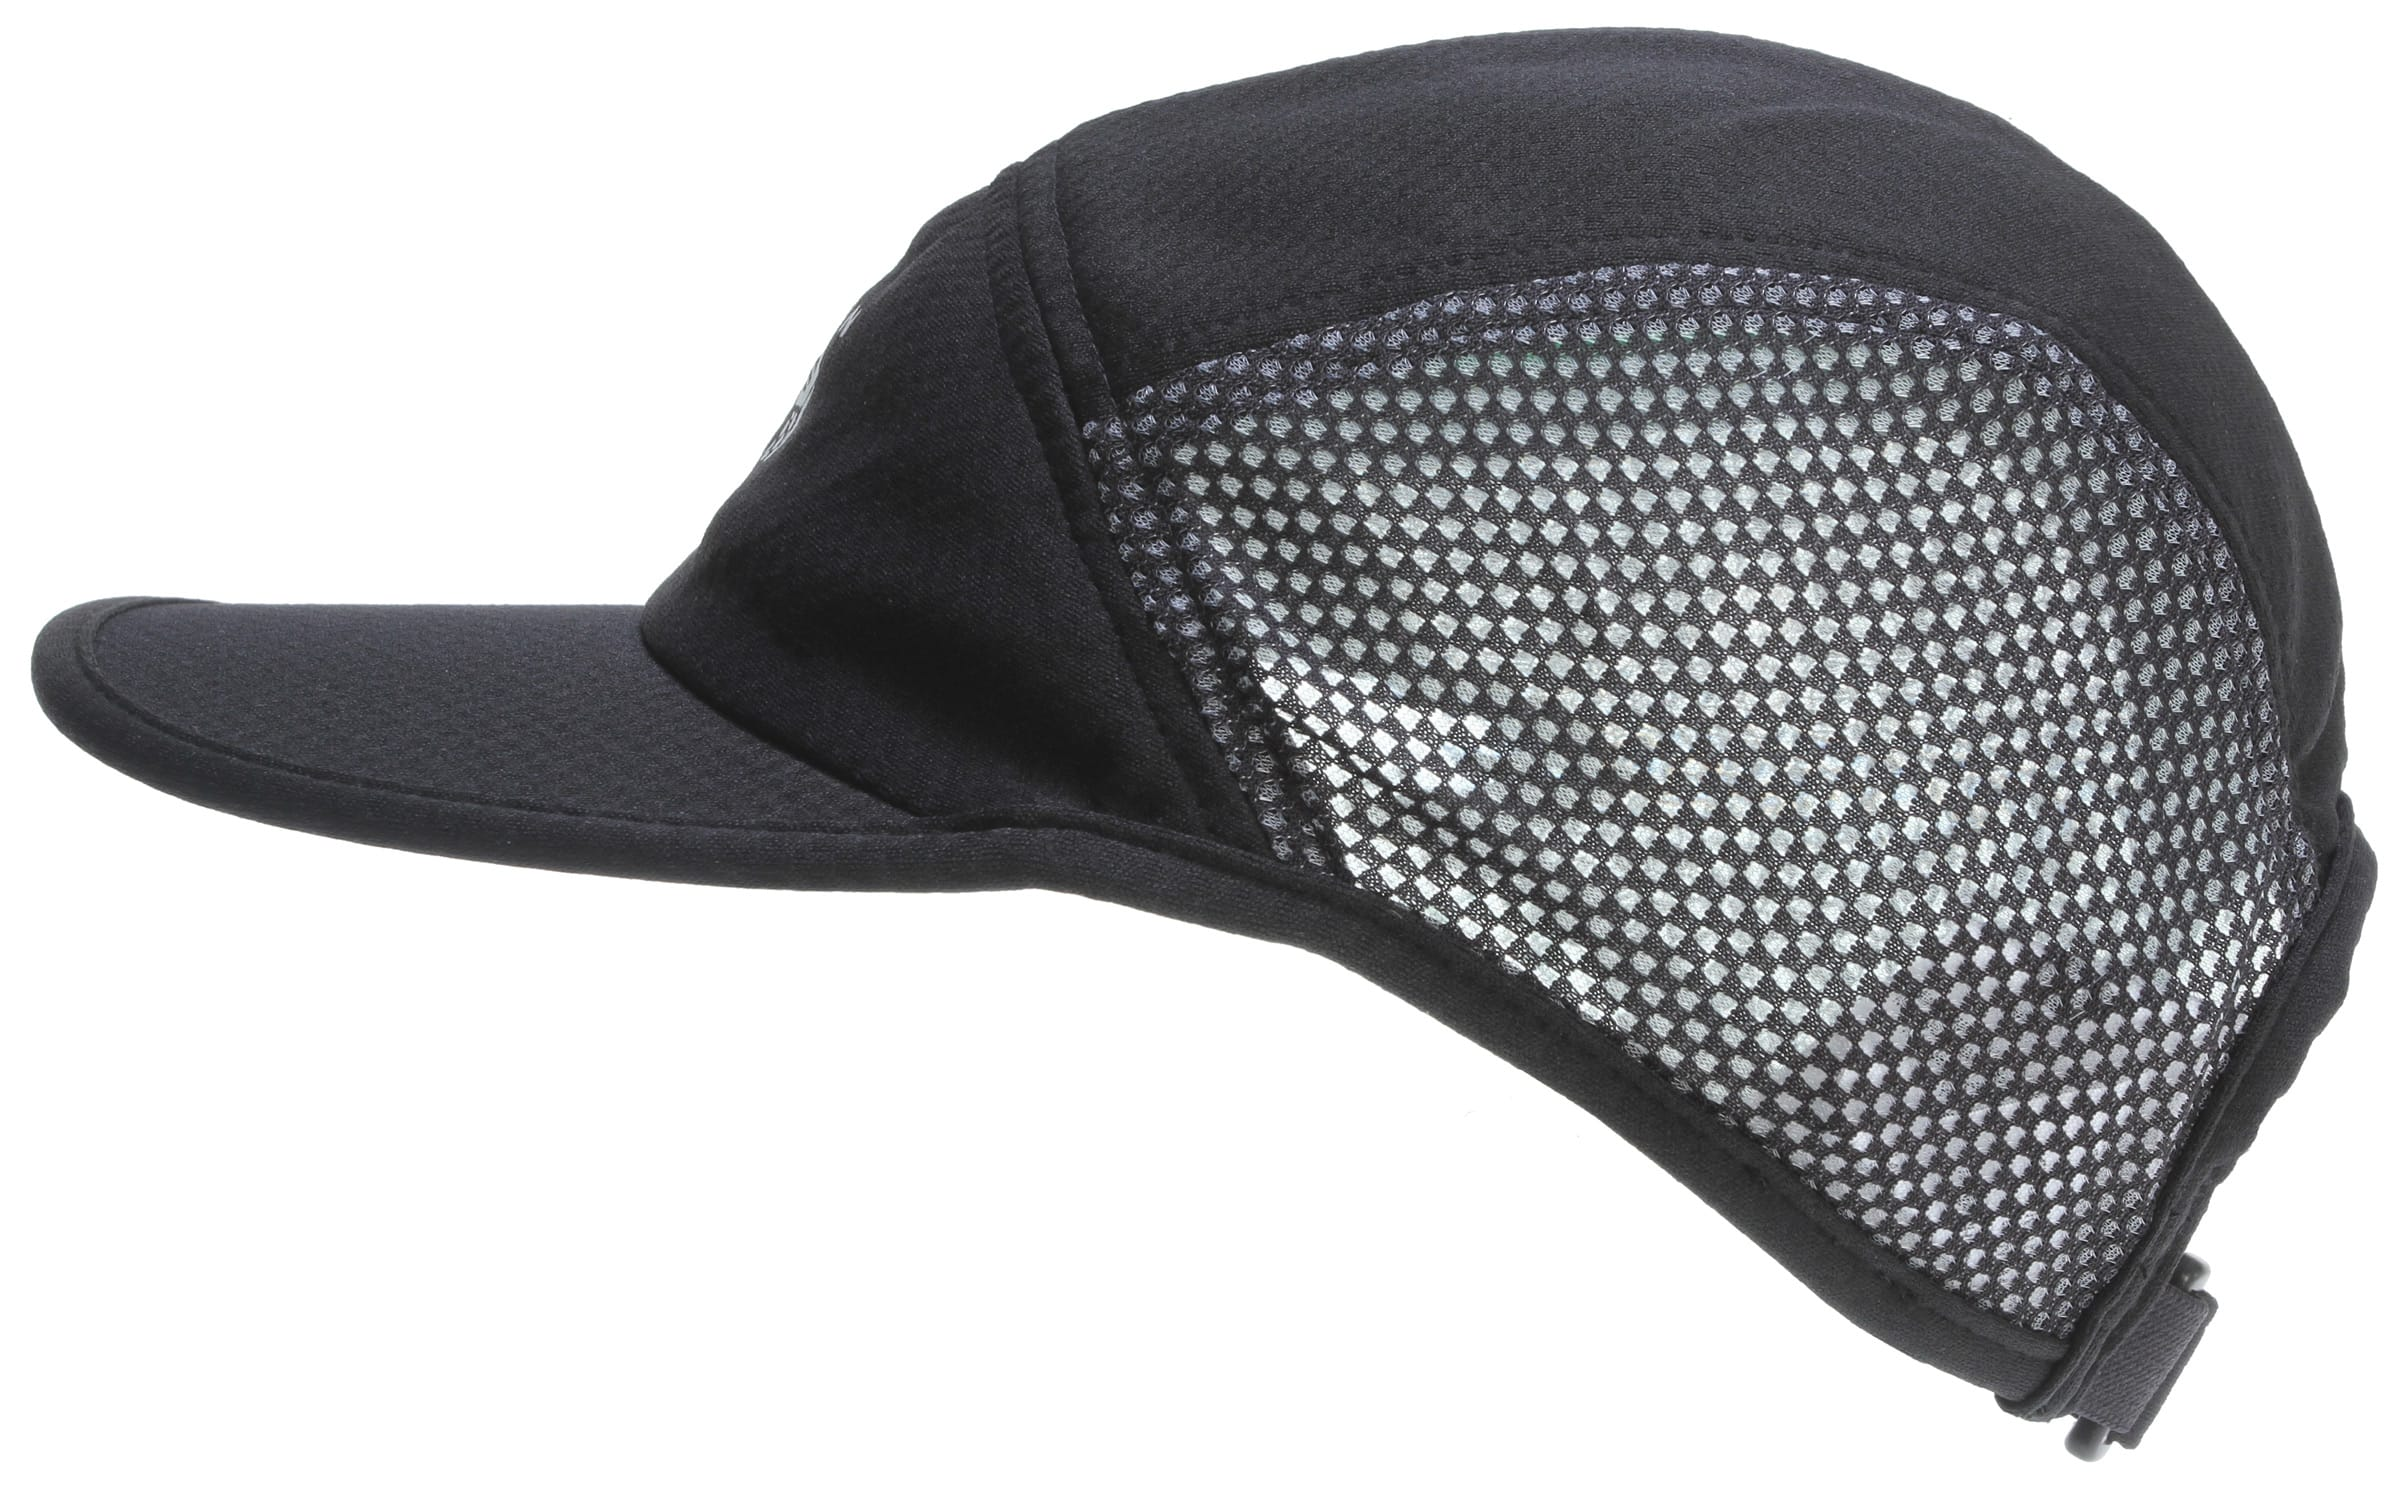 49856bb38115e Mountain Hardwear Quasar Running Cap - thumbnail 2